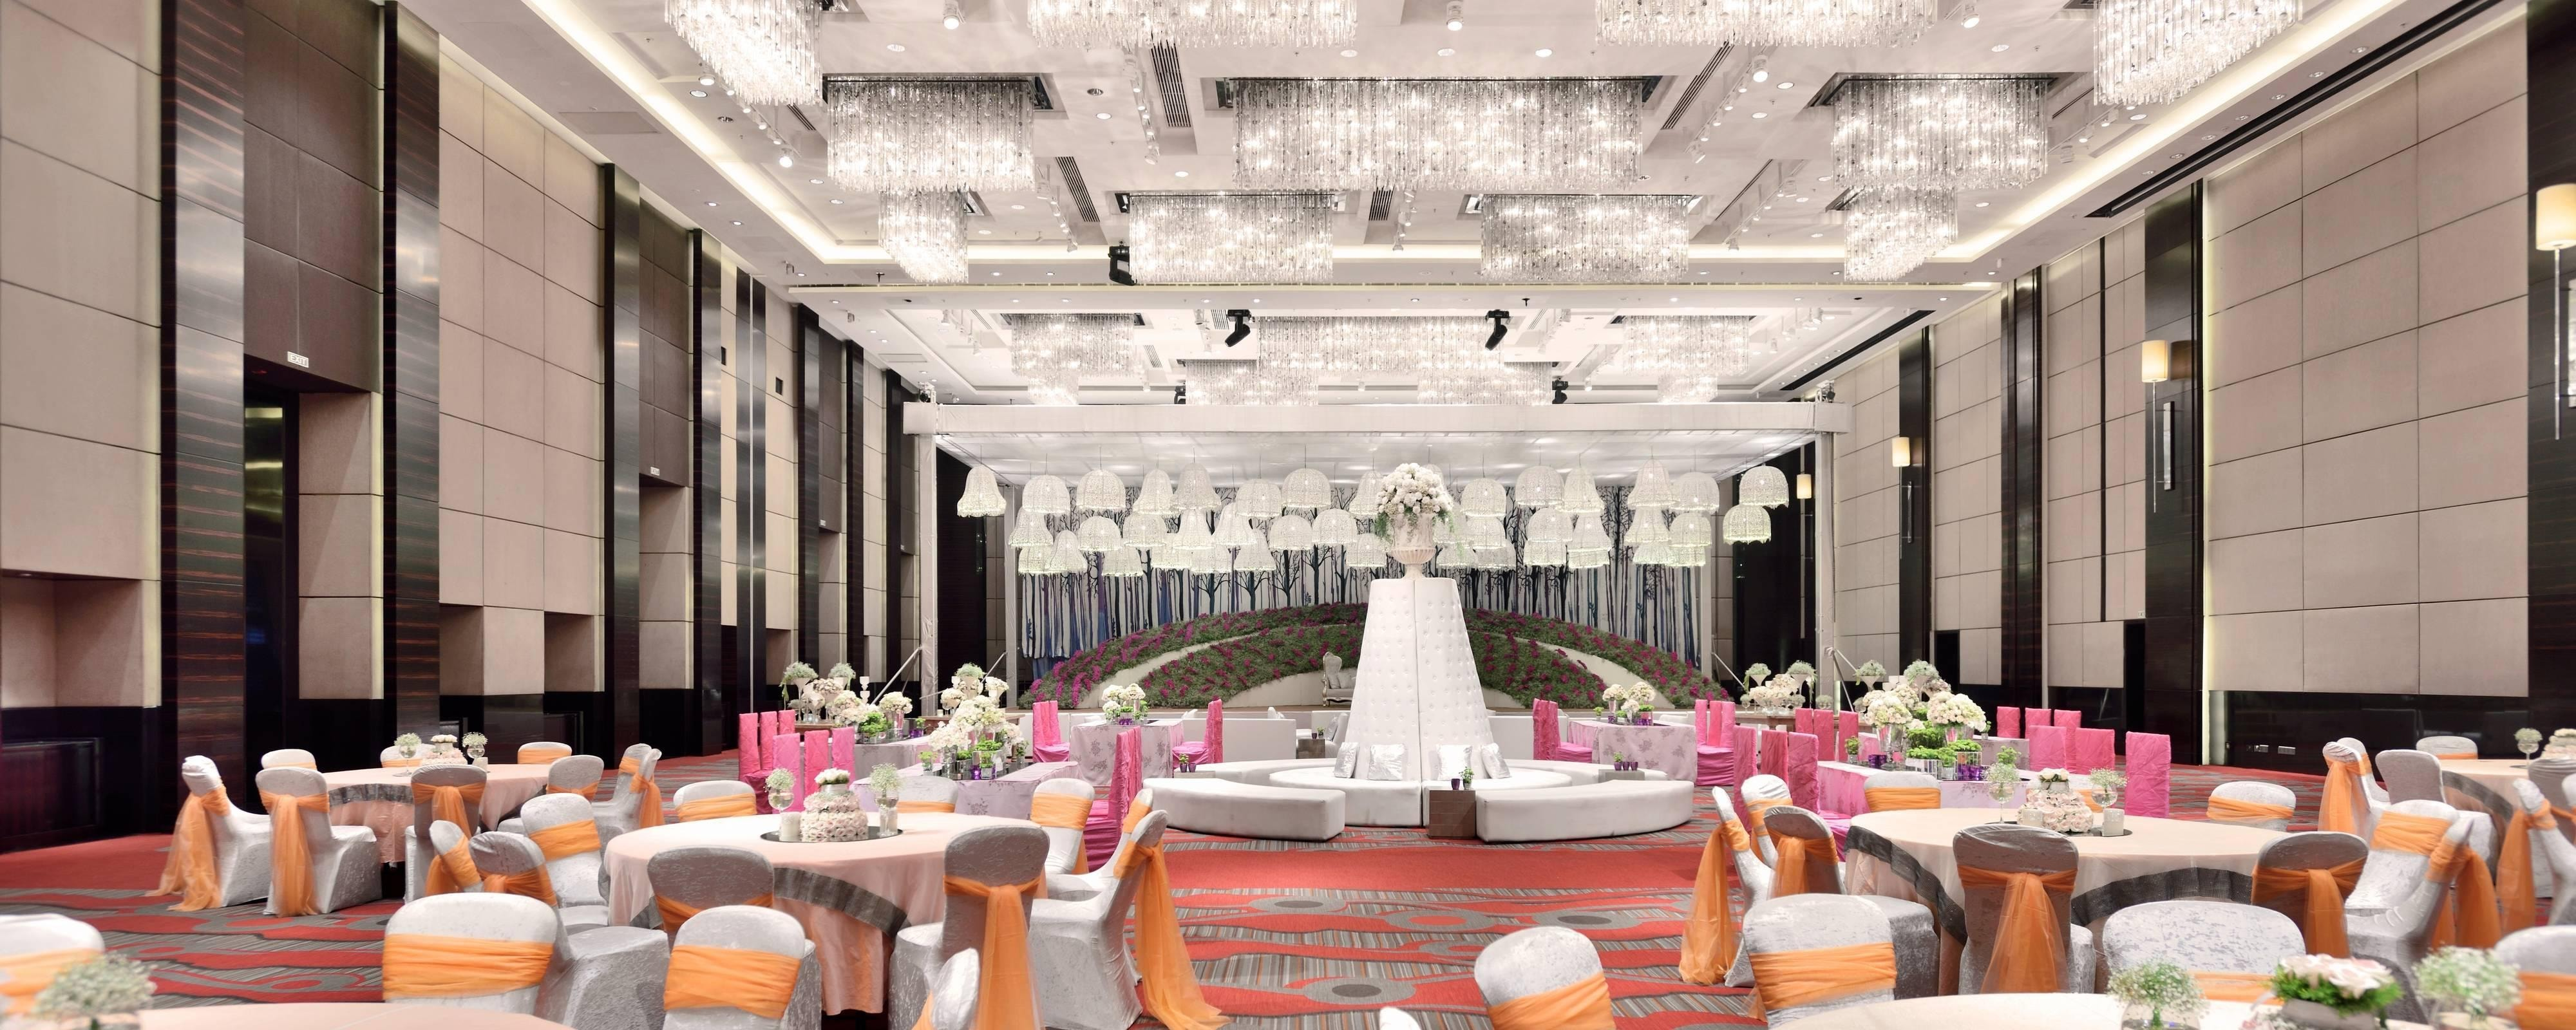 Banquet Halls in Pune  Wedding Hall Venues  JW Marriott